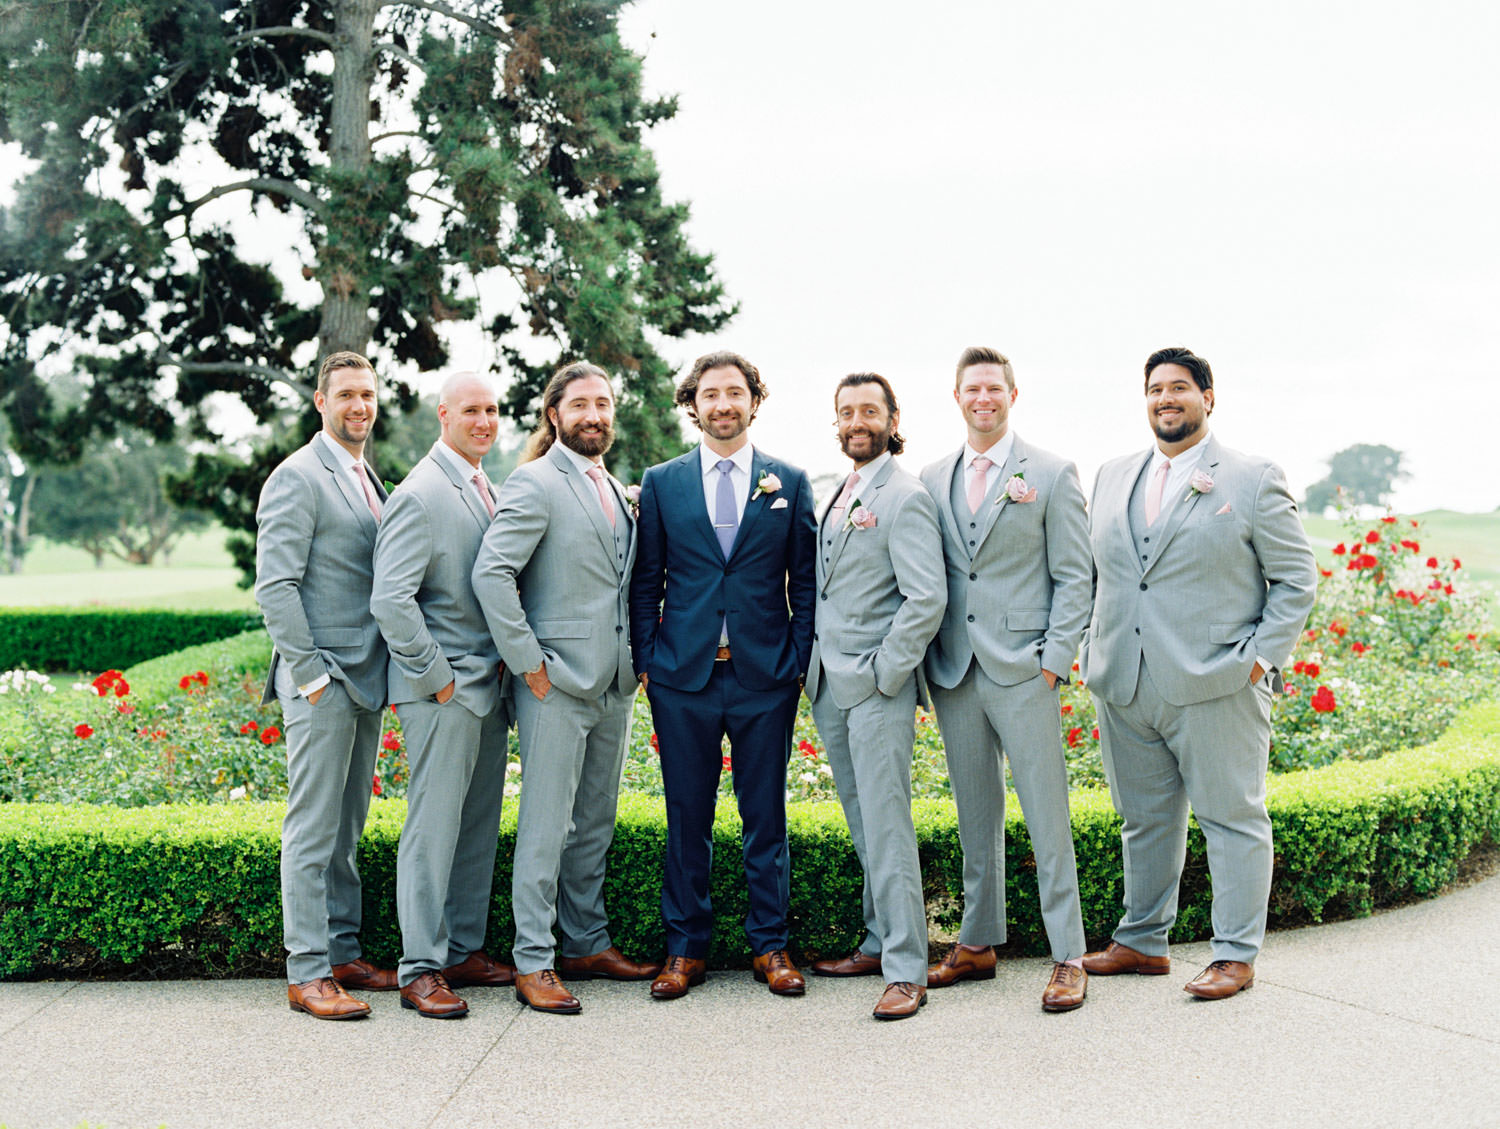 Groomsmen in light grey suits and groom in navy suit, Lodge at Torrey Pines wedding, film photography by Cavin Elizabeth Photography